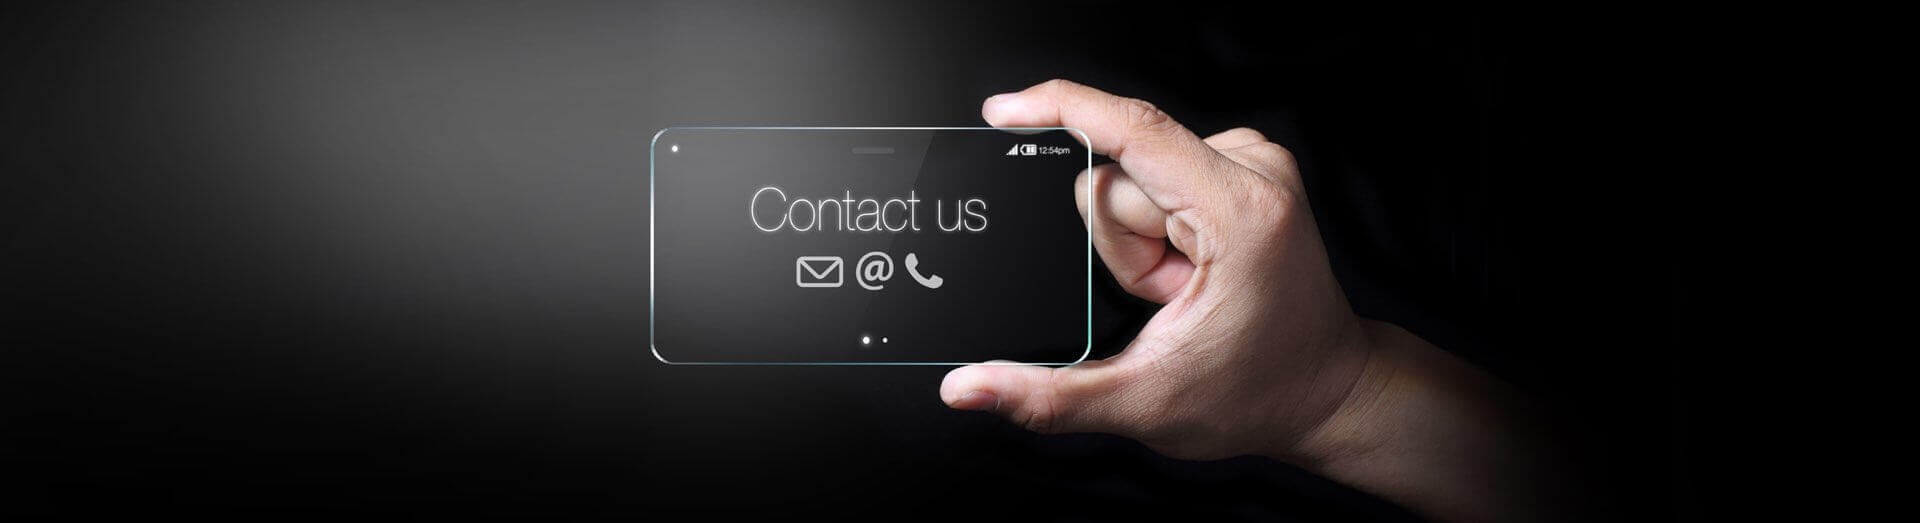 hight resolution of contact us